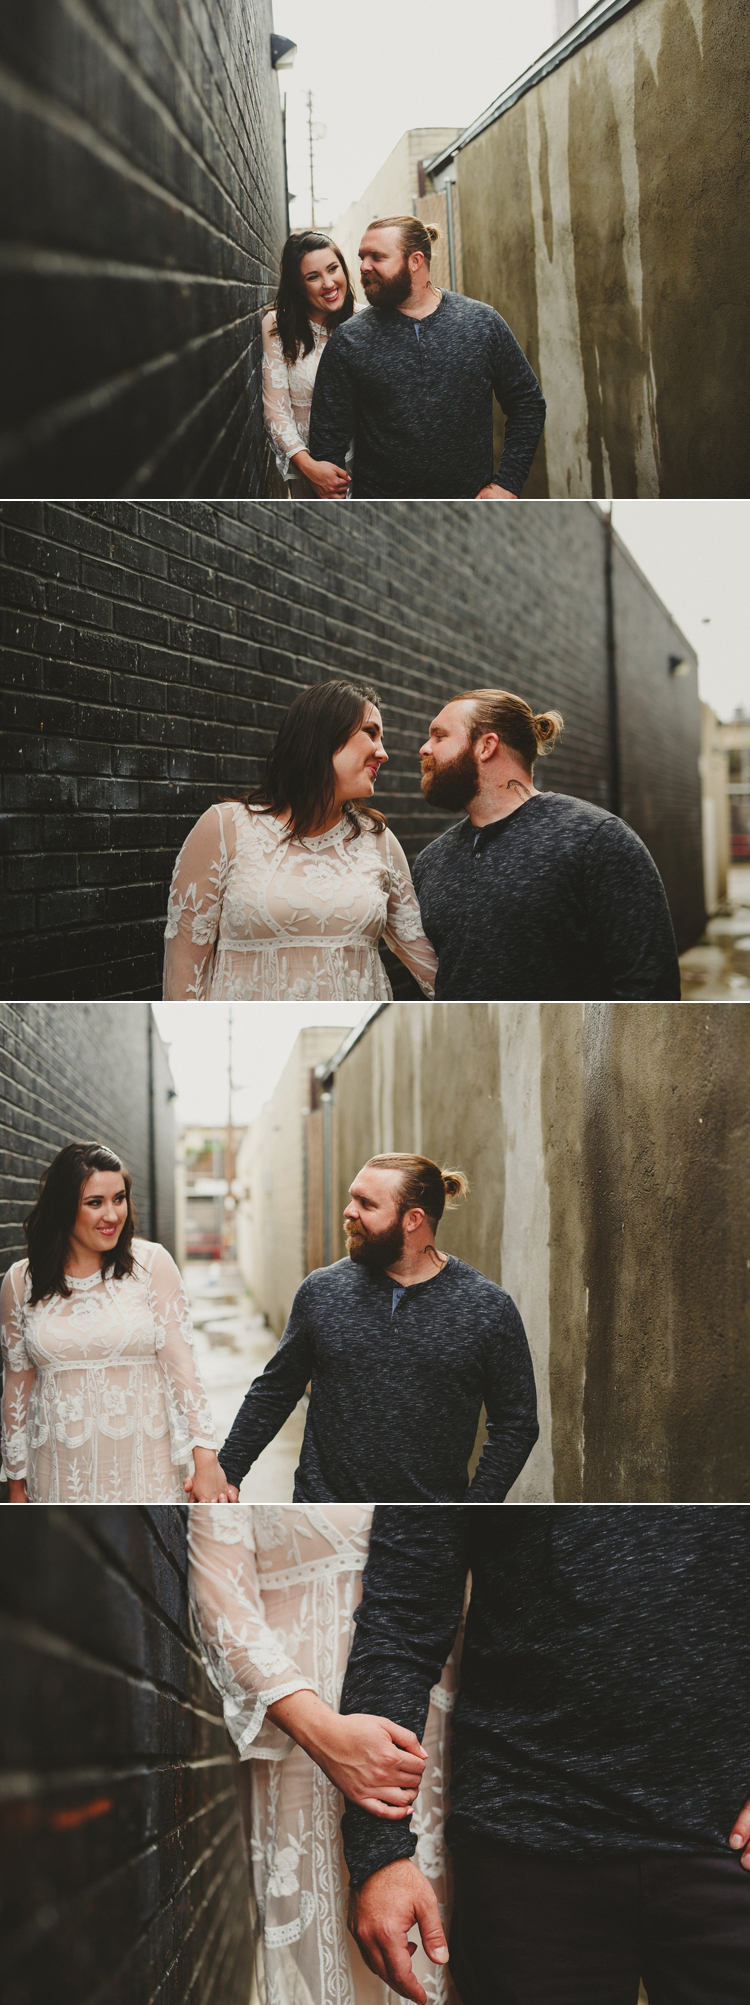 Engagement Photos At Brewery San Diego